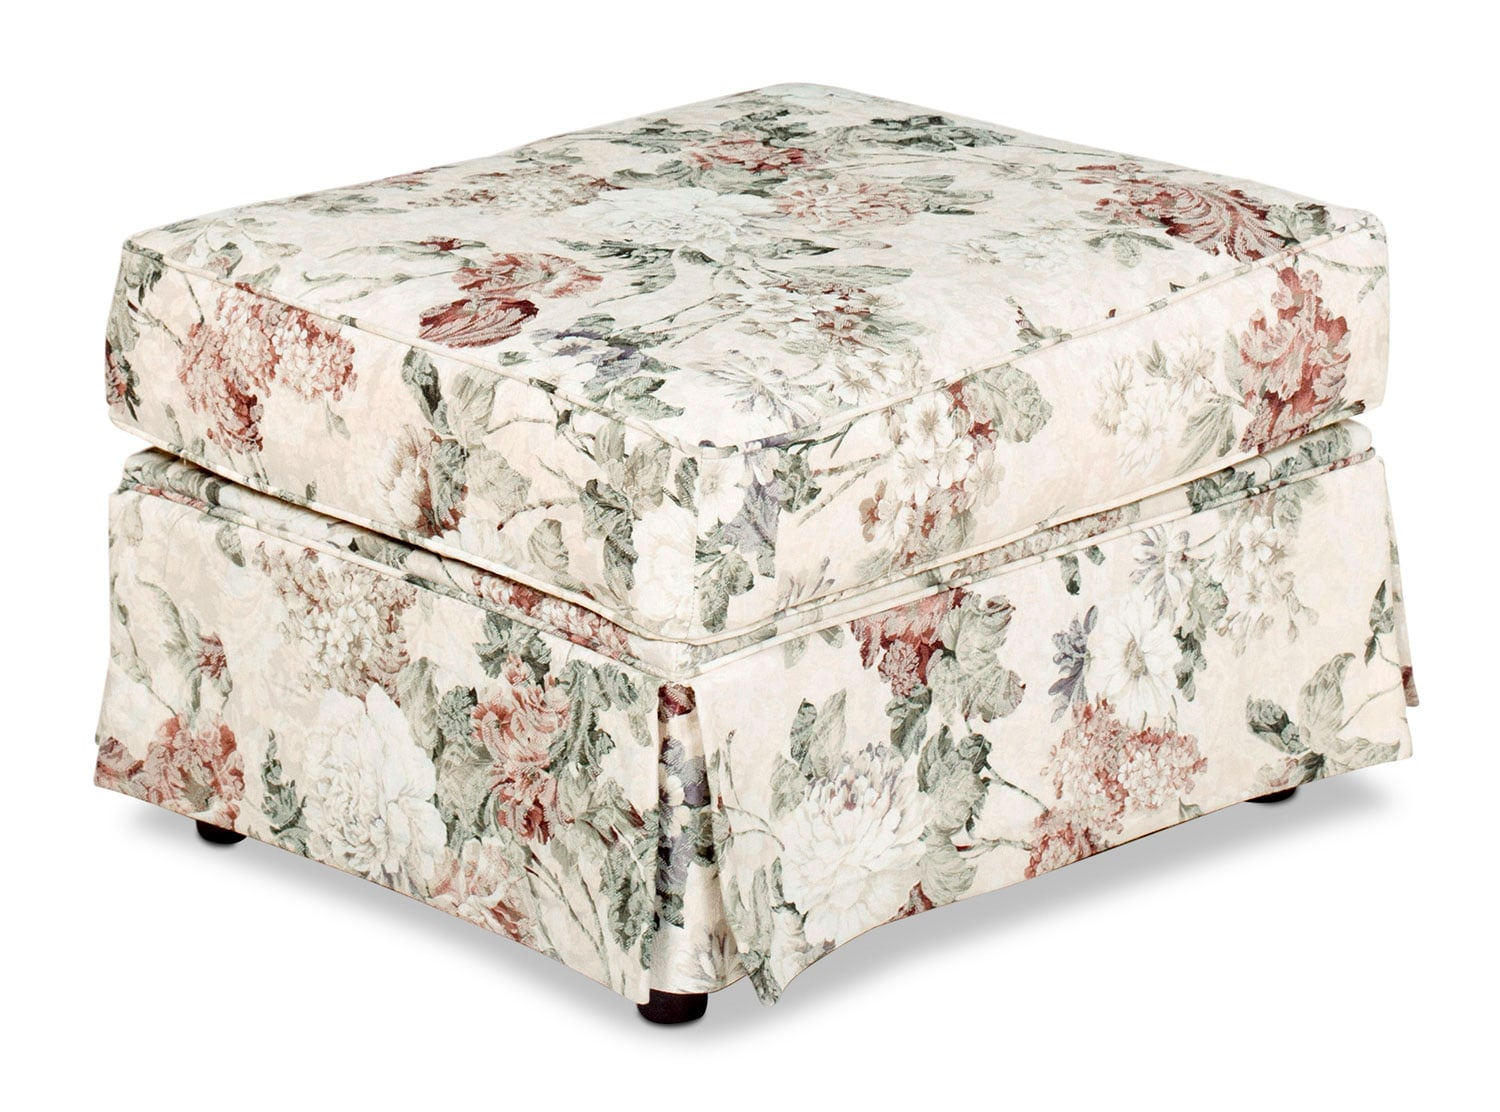 Living Room Furniture - Sofia Ottoman - Floral